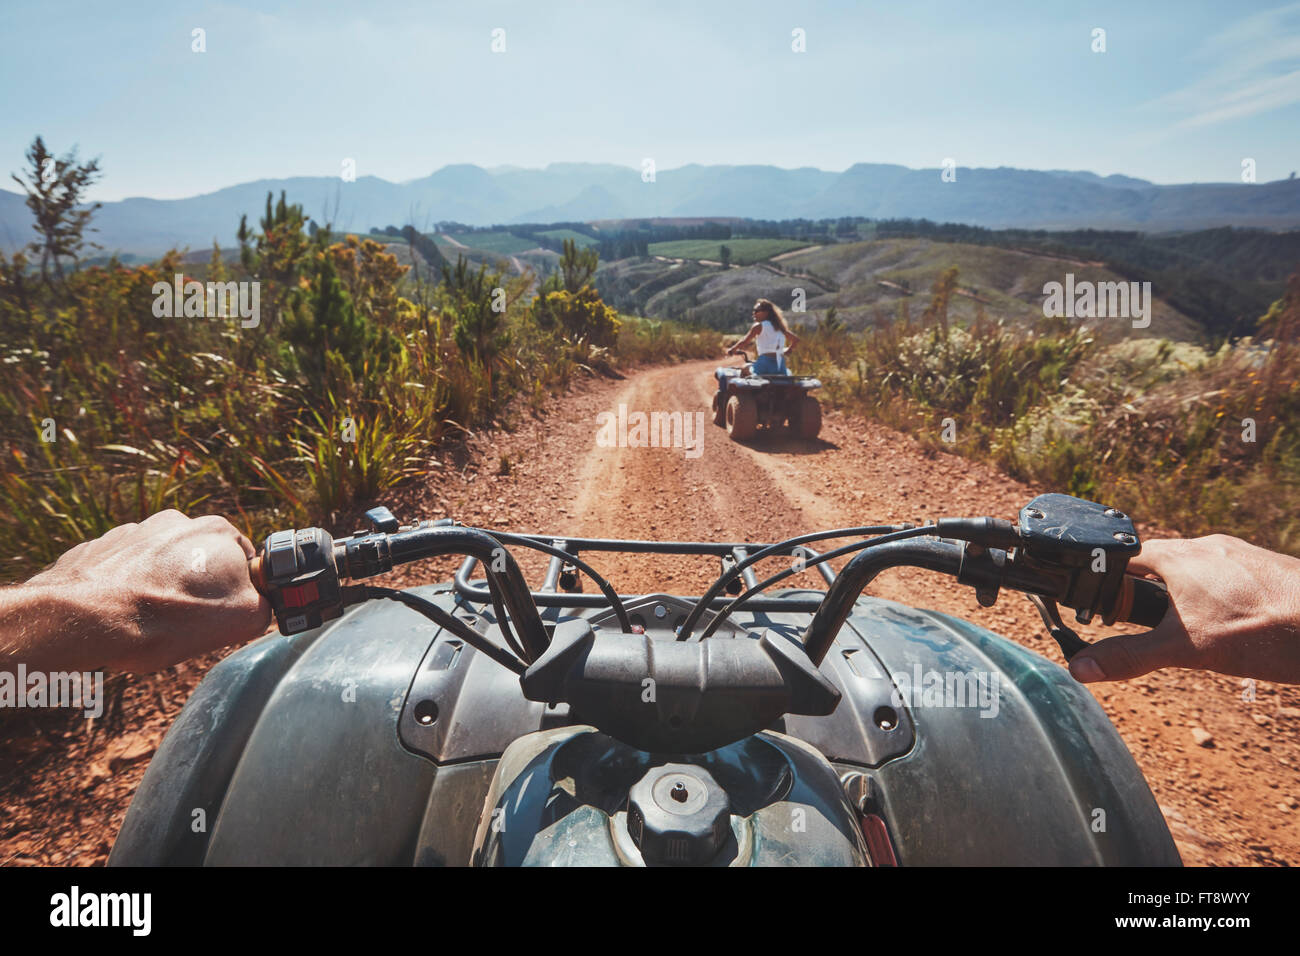 View from a quad bike in nature. Woman in front driving off road on an all terrain vehicle. POV image of a quad - Stock Image